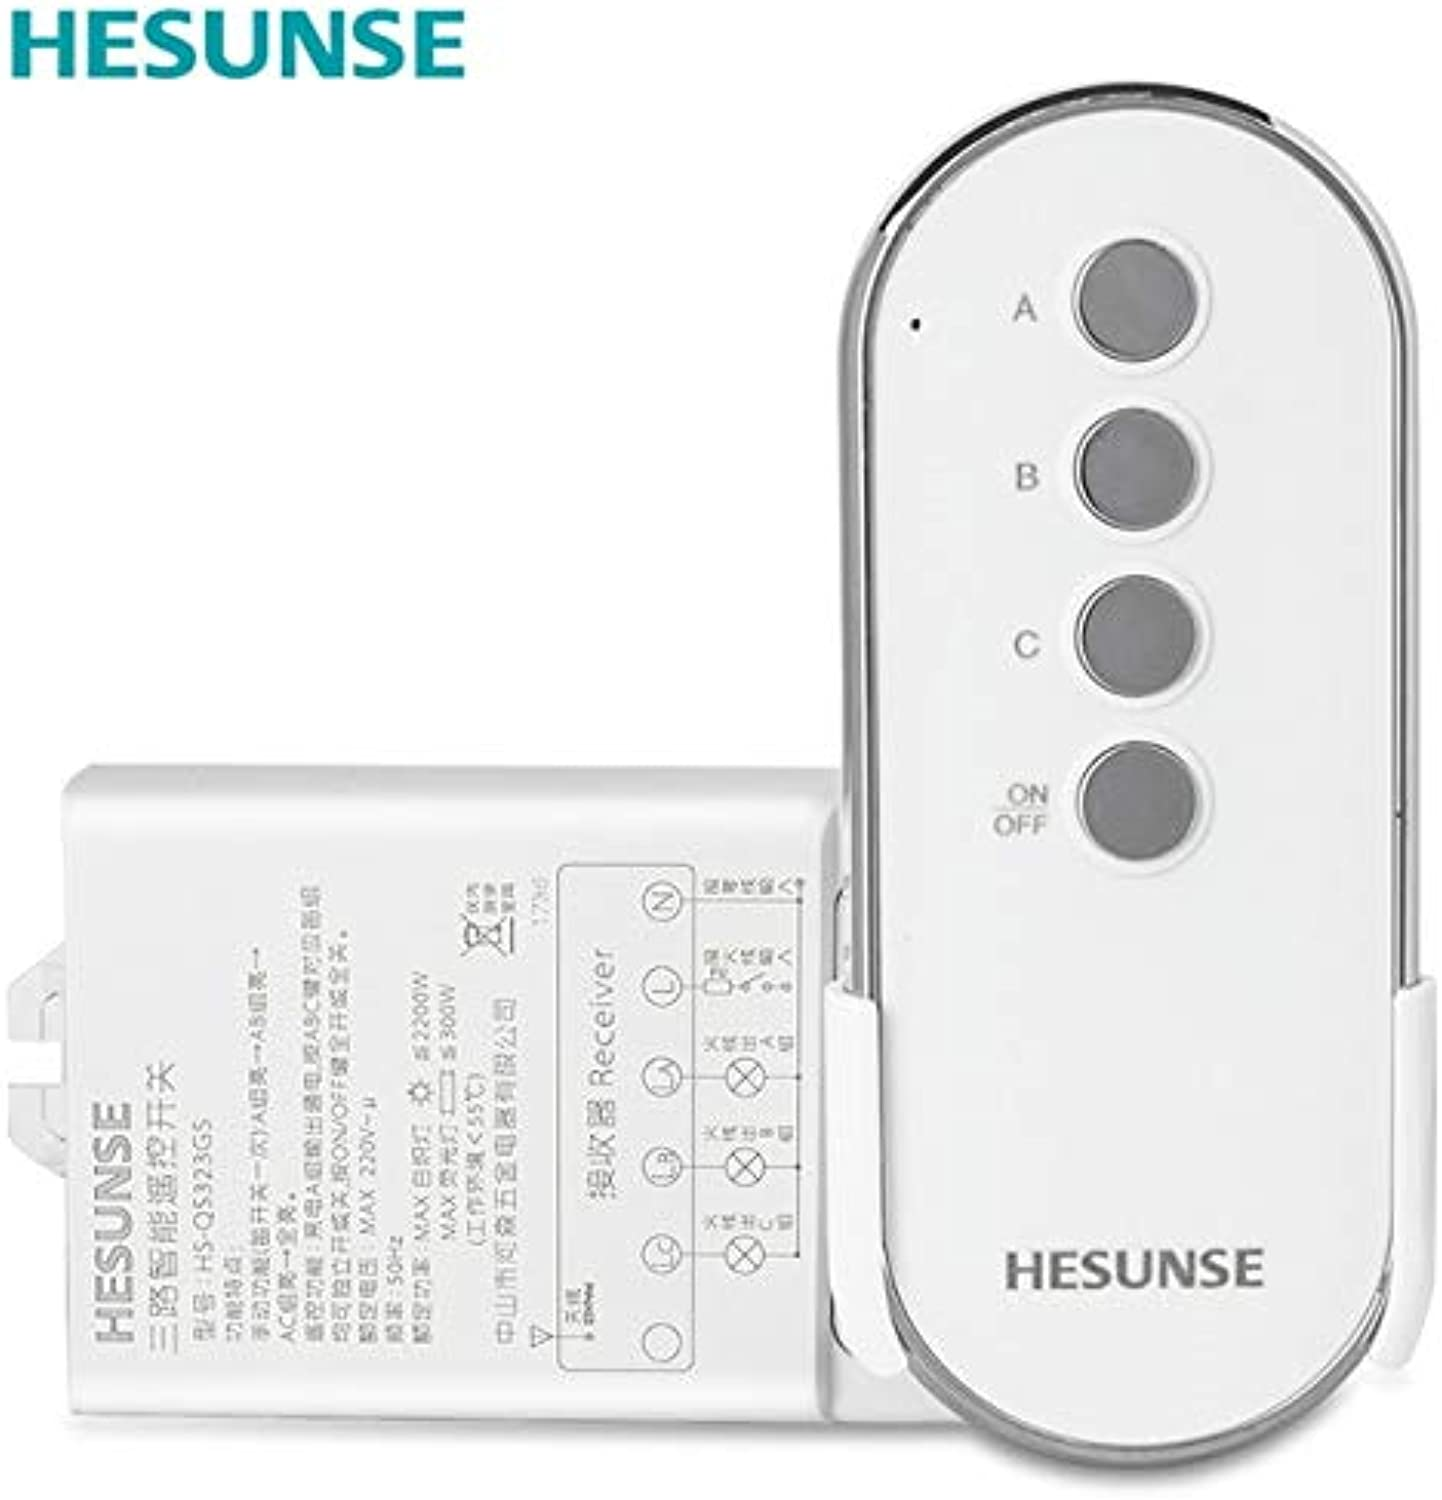 Hesunse New Wireless Remote Control Light Switch Digital 433 mhz Remote Switch Used with 110v and 220v  (color  HSQS323GS)